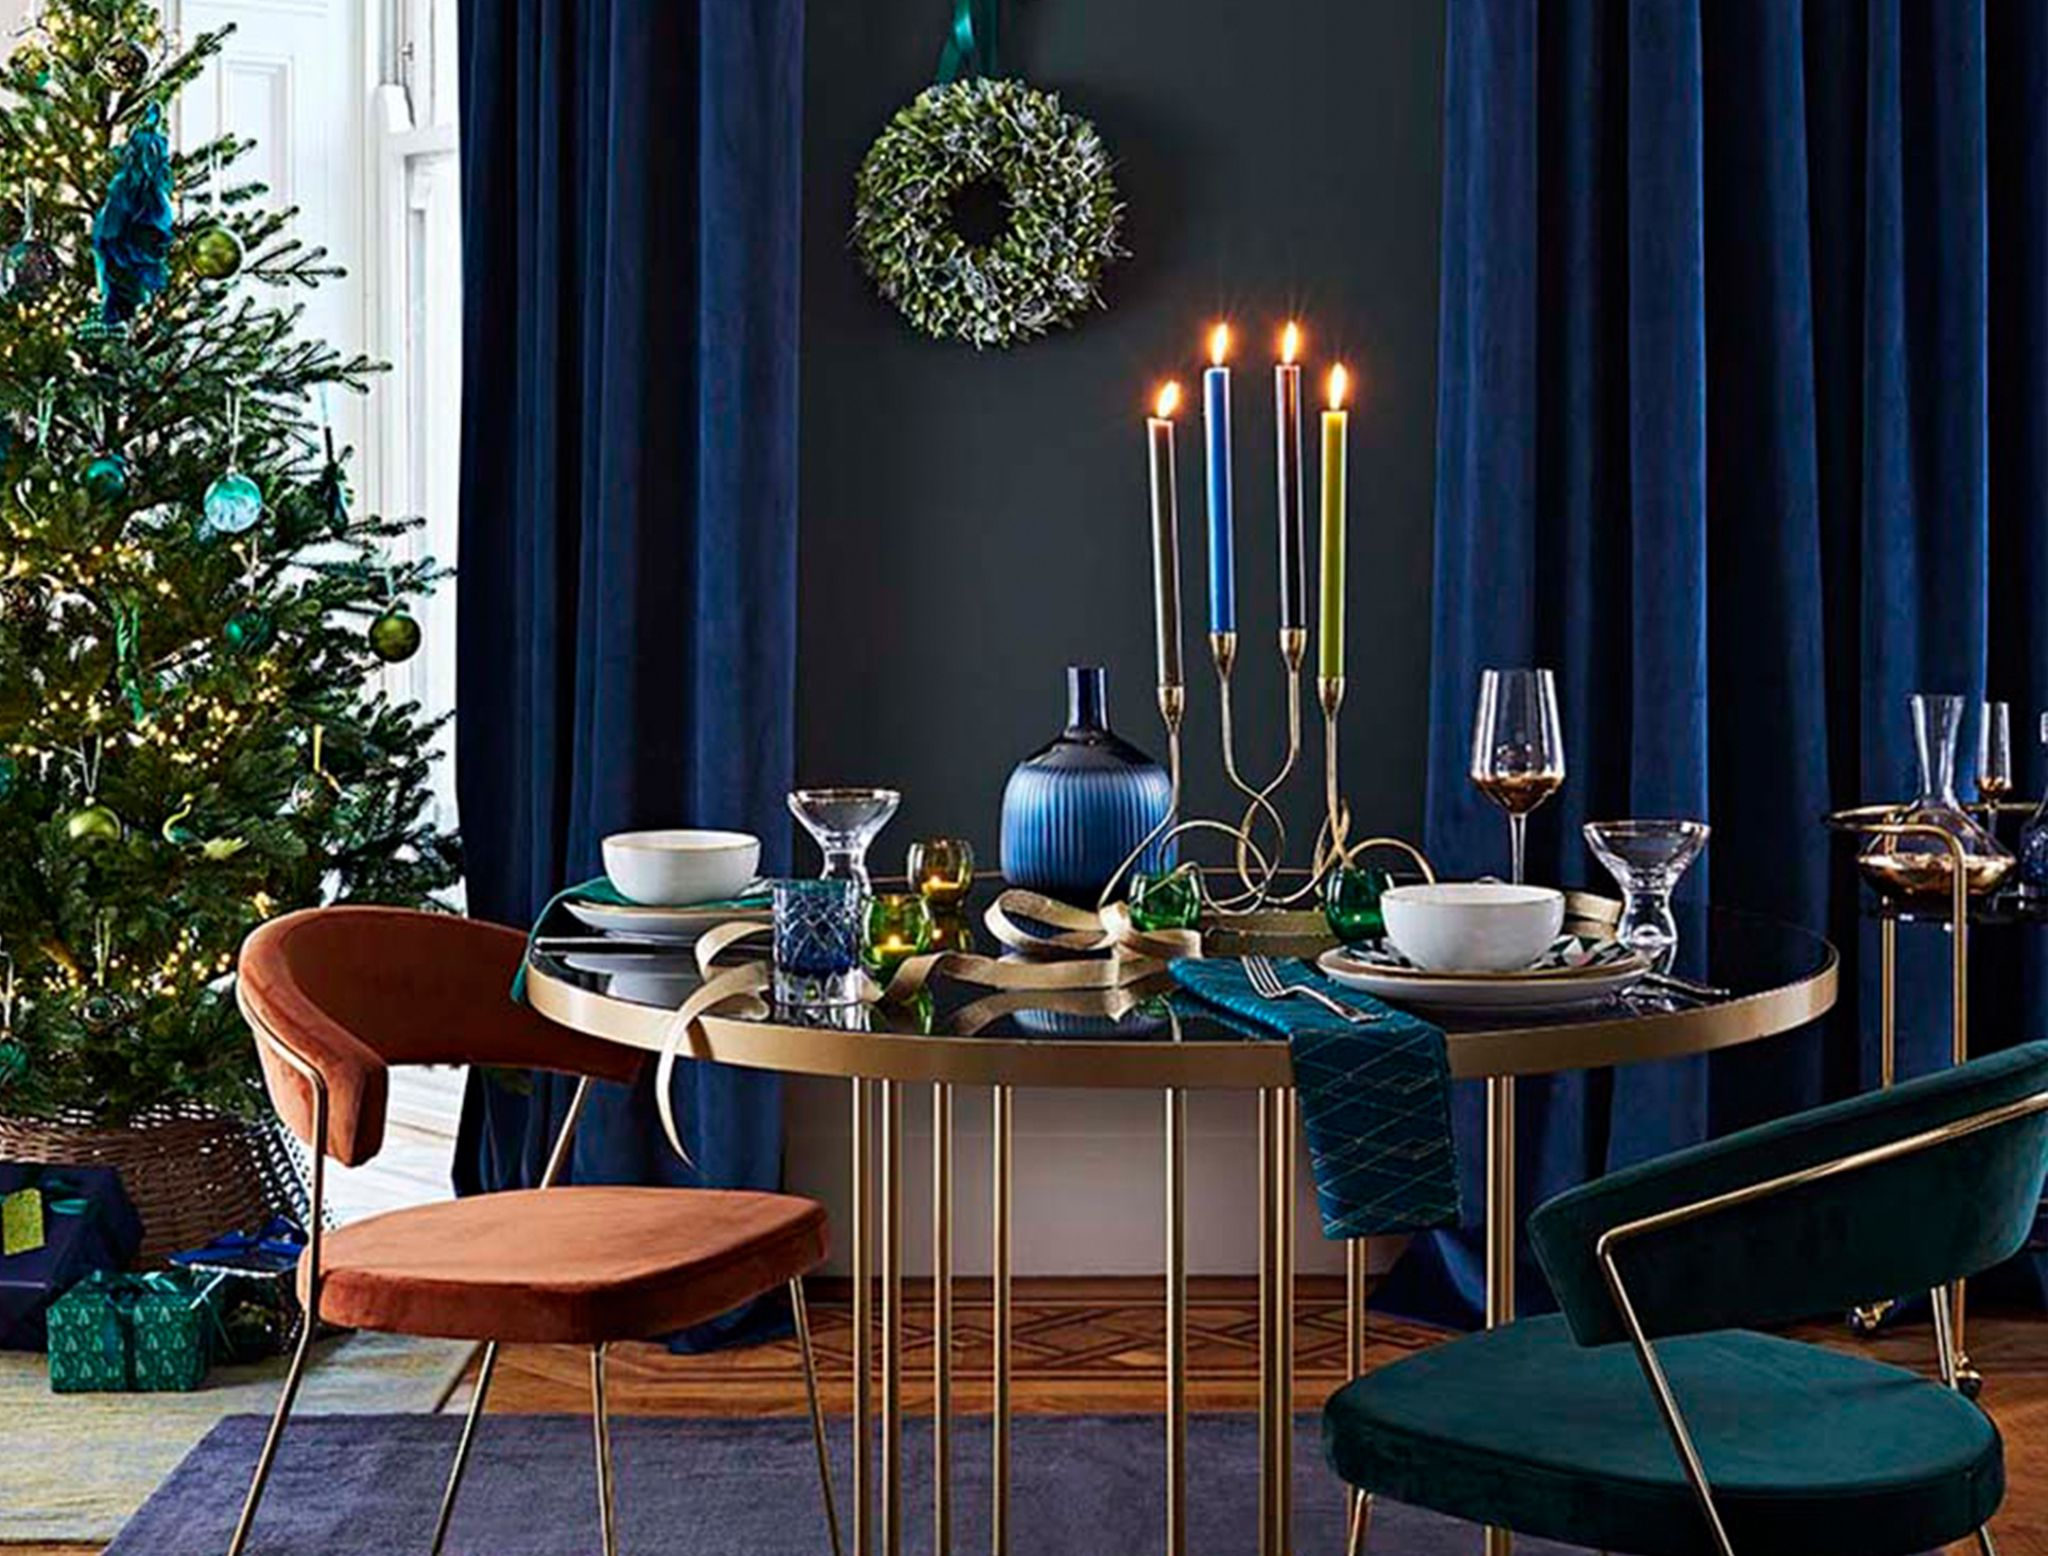 Dining room with Christmas setting